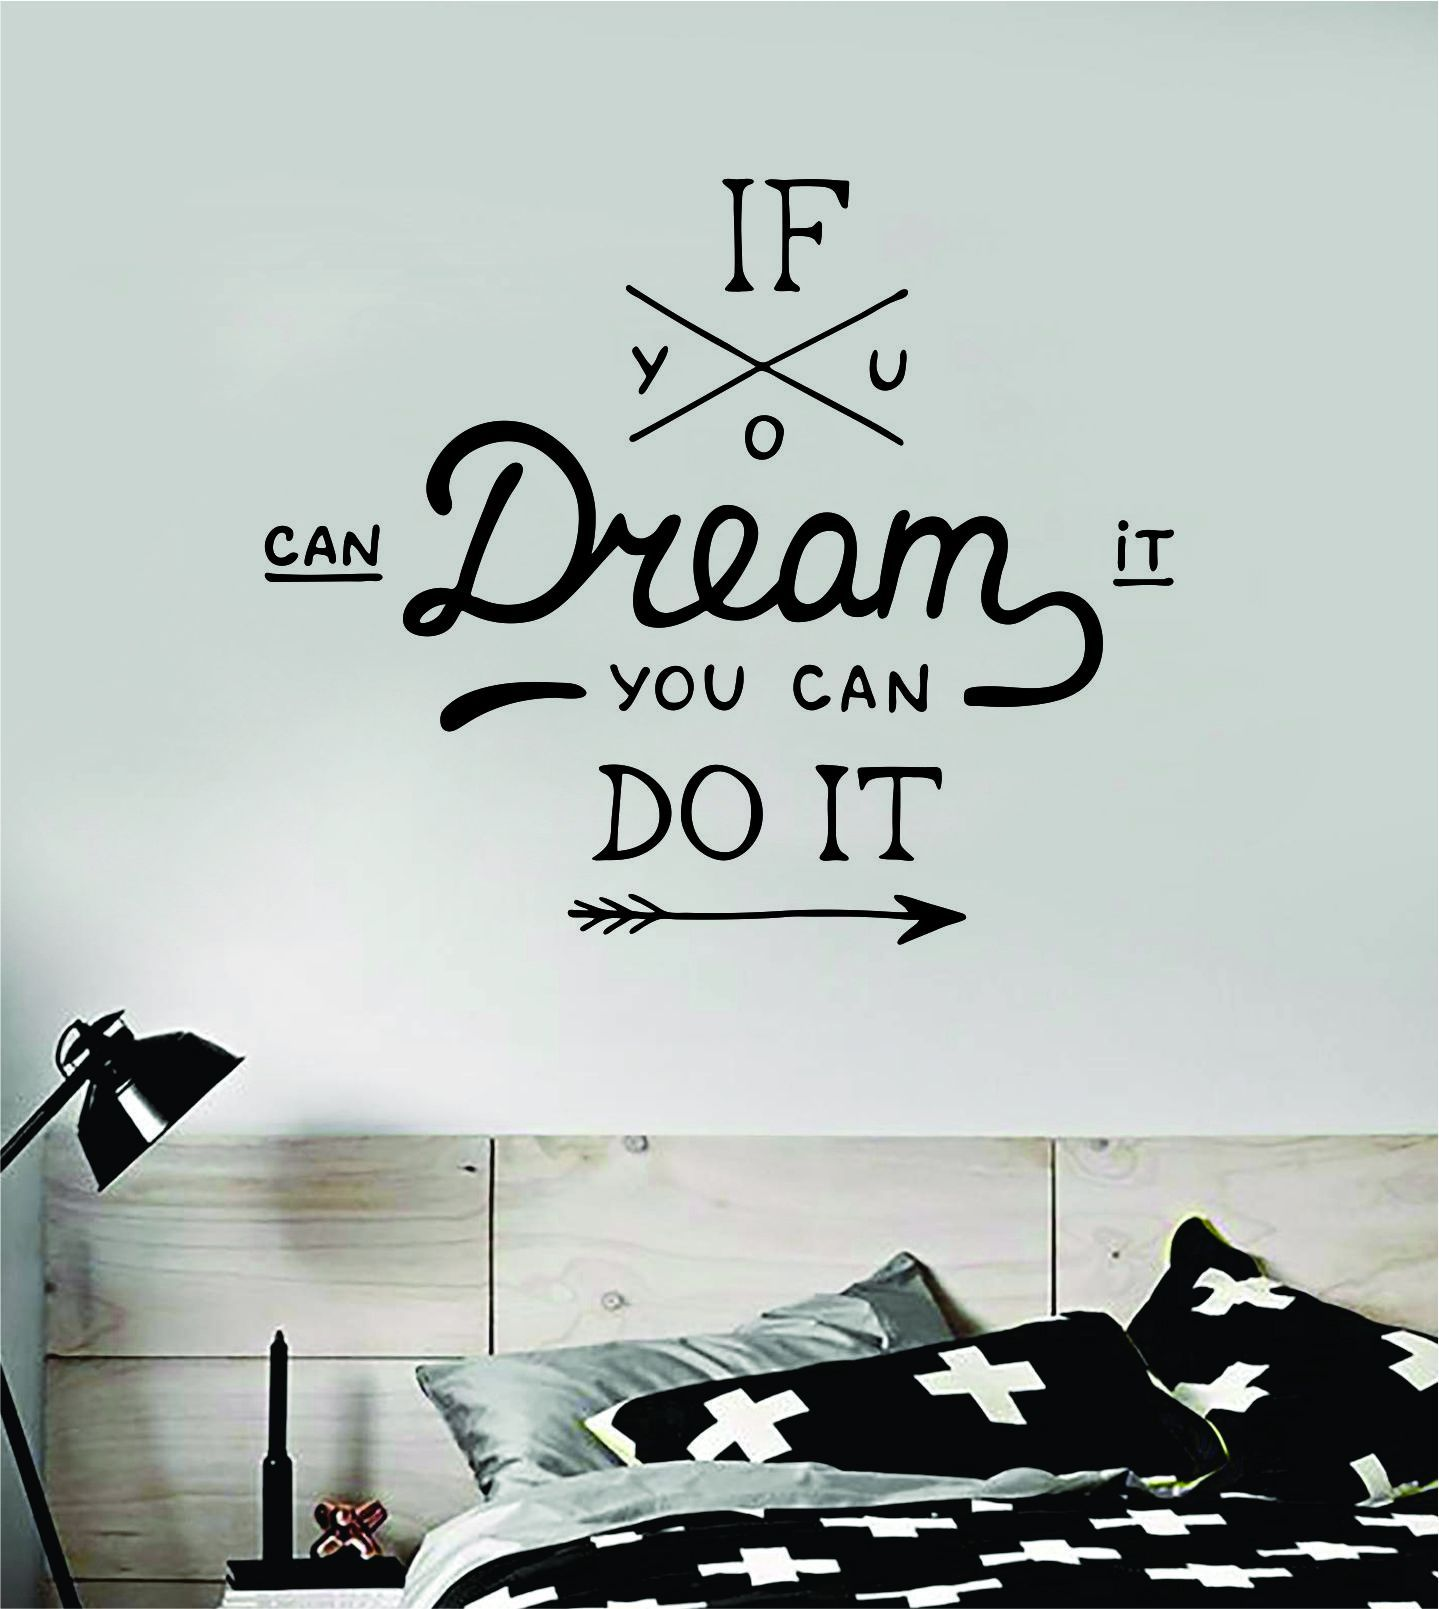 If You Can Dream It Quote Wall Decal Sticker Bedroom Room Art Vinyl Inspirational Motivational Kids Teen Baby Nursery Playroom School Gym Fitness - orange